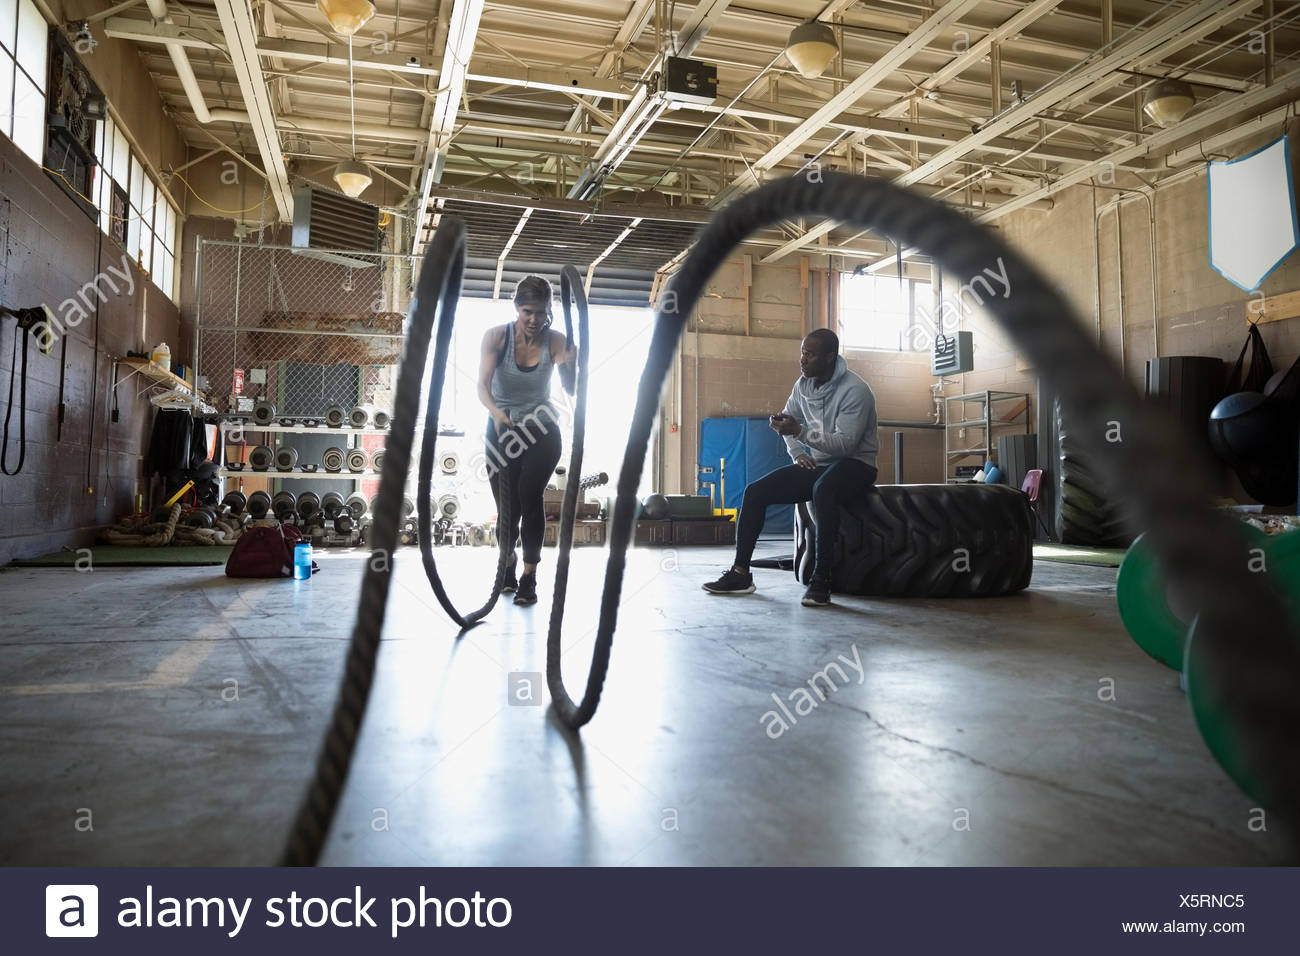 Male personal trainer watching female client doing crossfit battling ropes exercise in gym - Stock Image